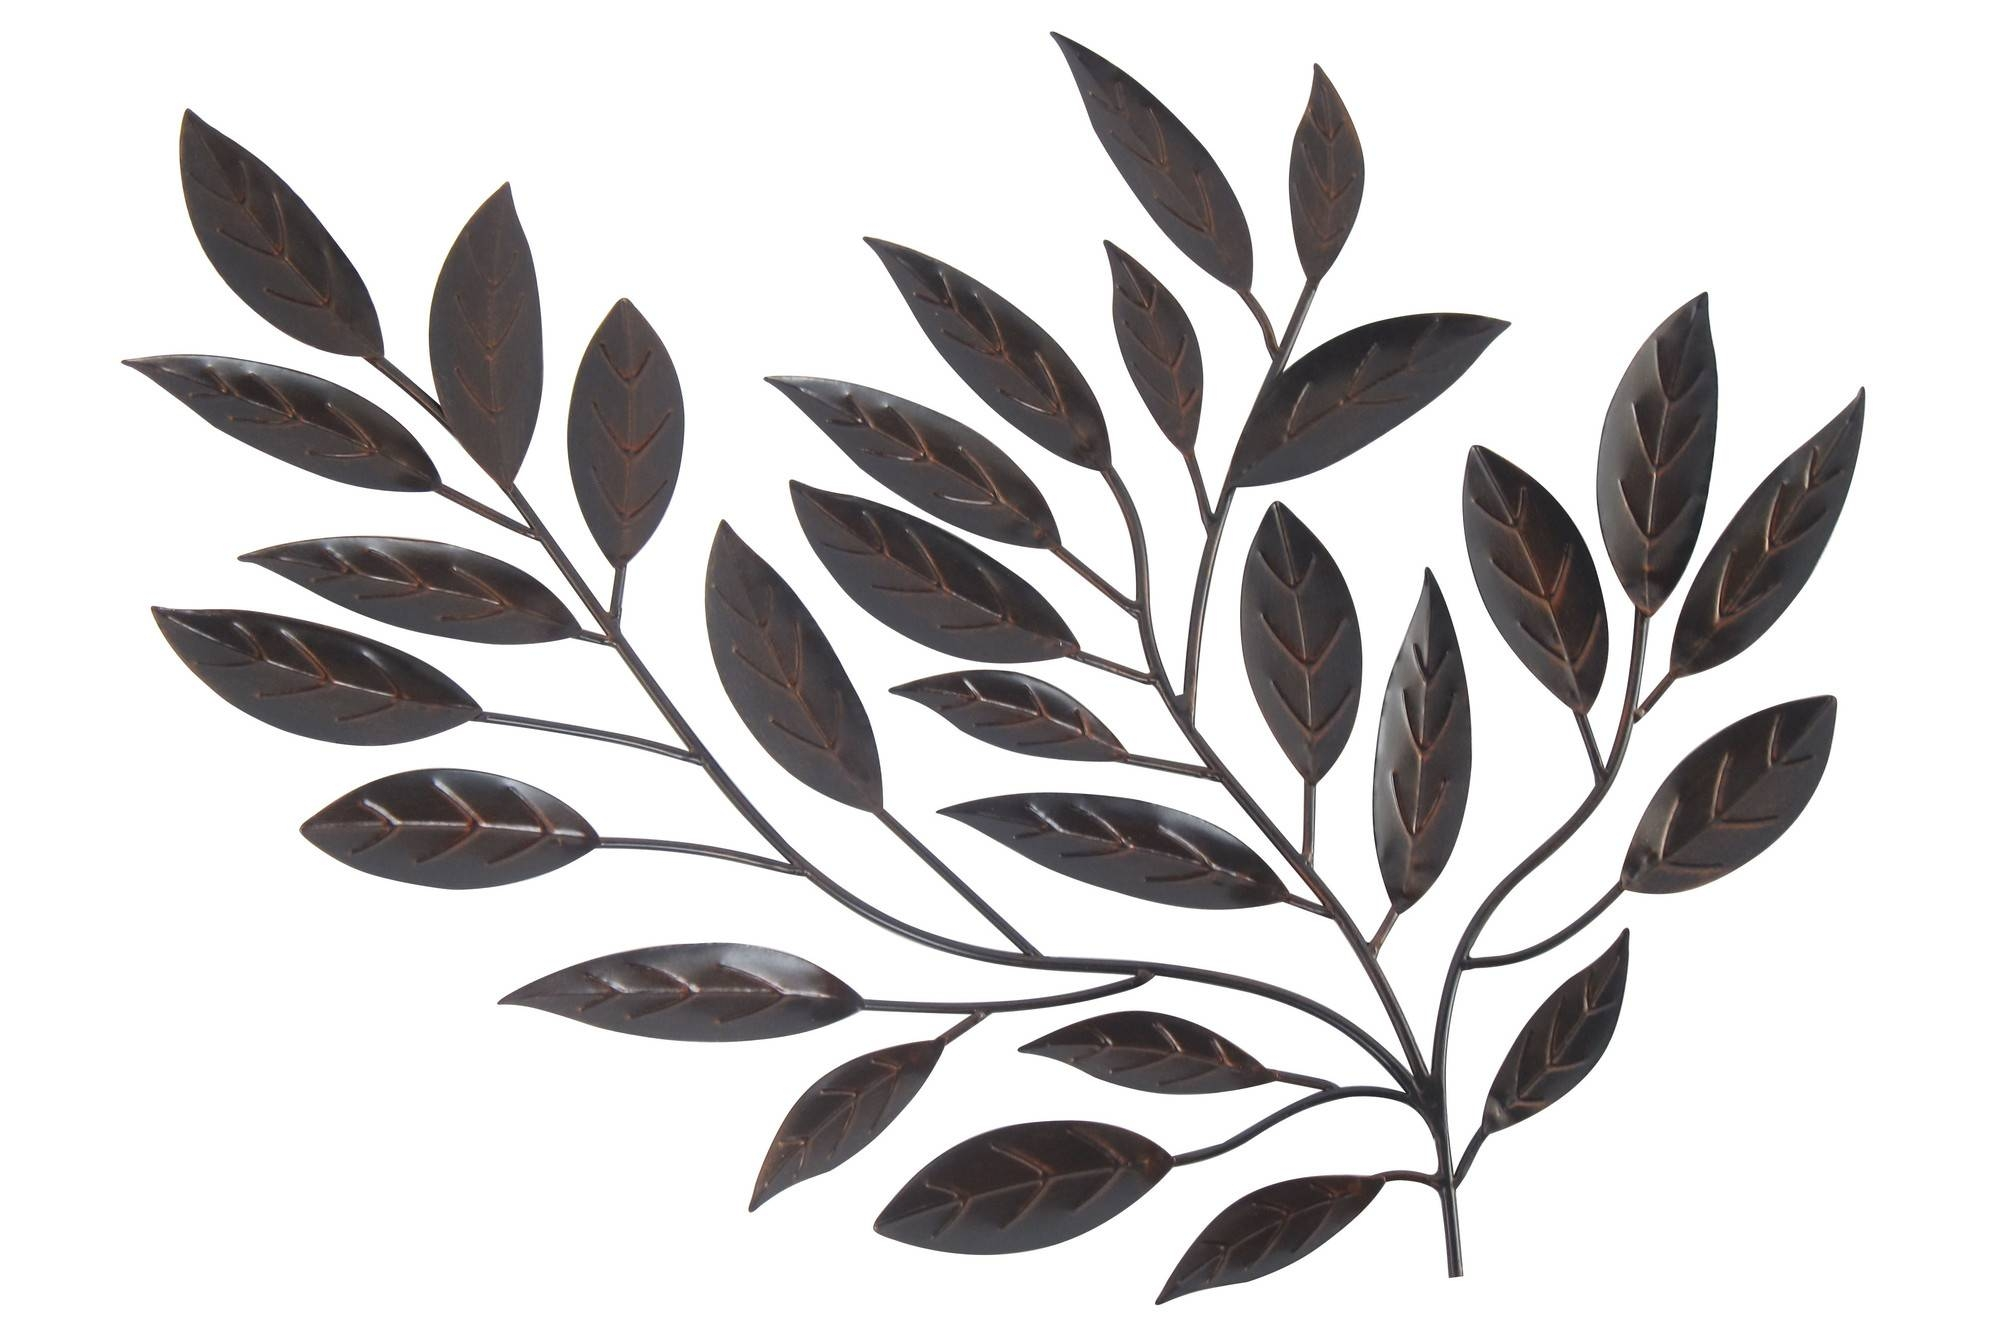 Forged Metal Leaves – Floral Metal Wall Art In Most Current Leaves Metal Wall Art (View 4 of 20)